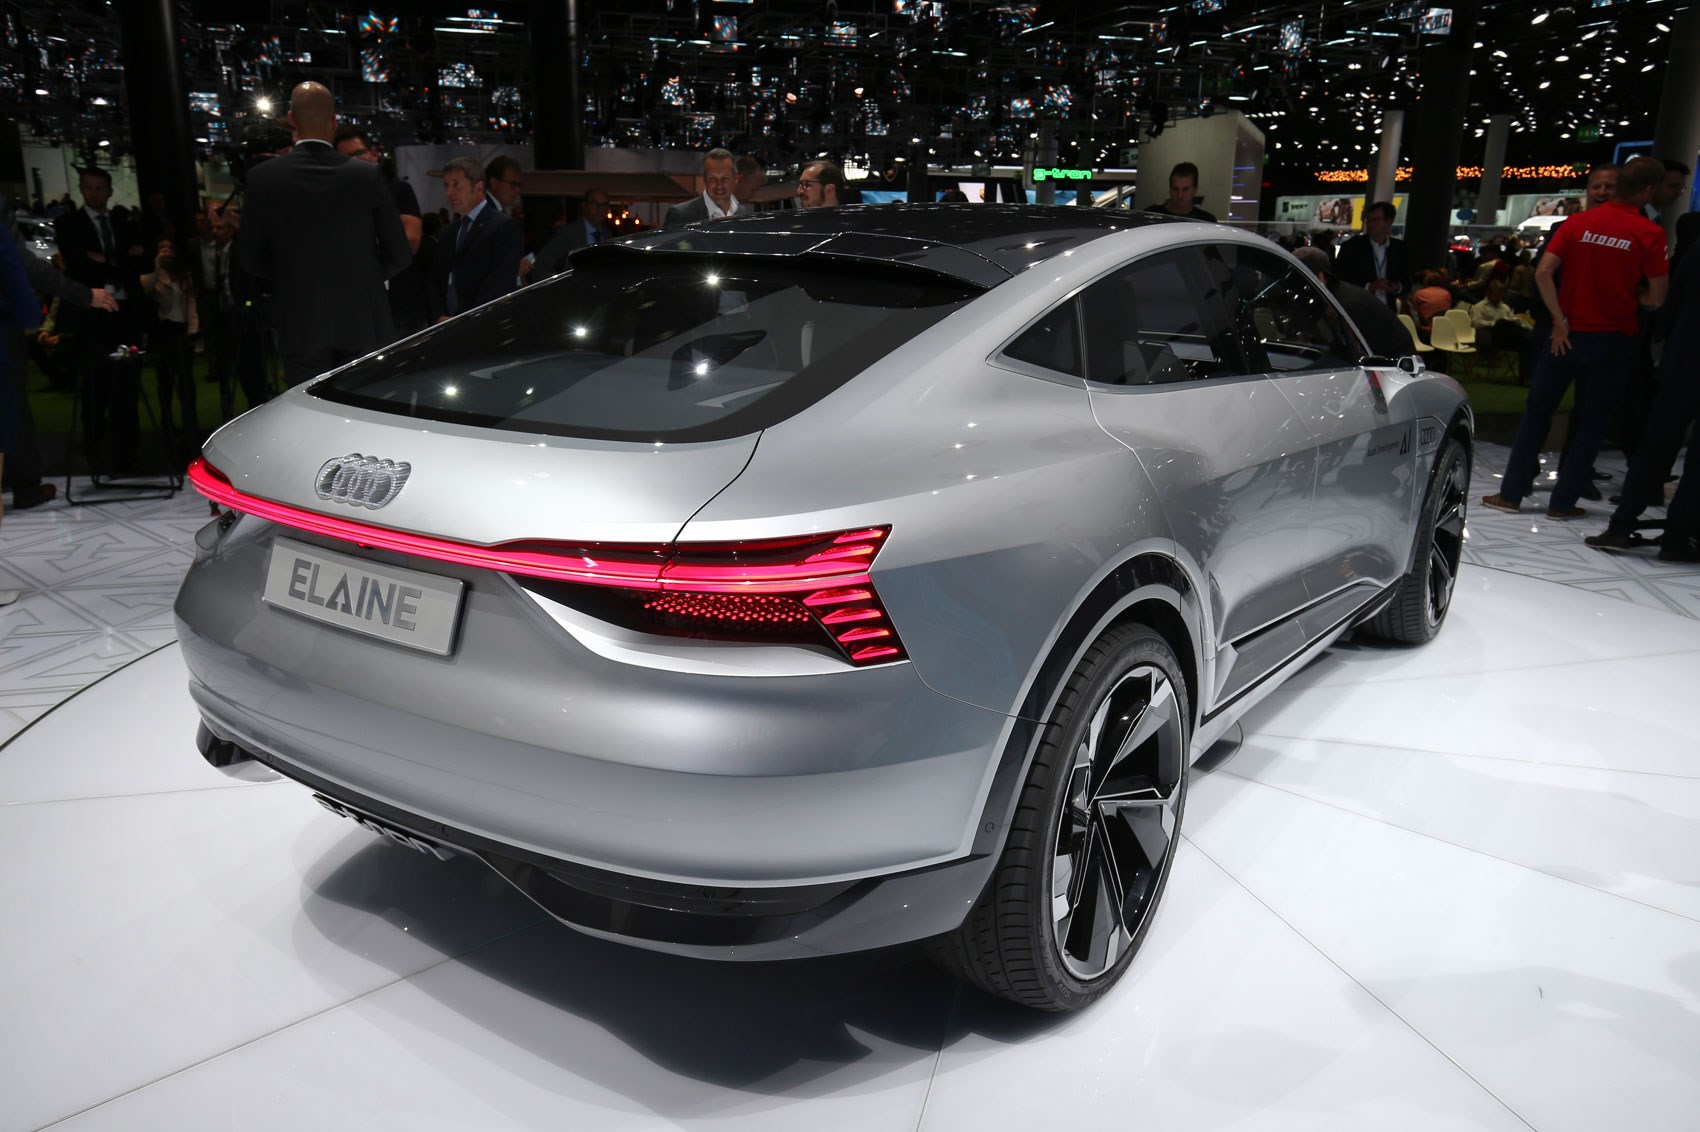 Audi Aicon And Elaine Concepts At Frankfurt Motor Show By CAR - Audi car 2017